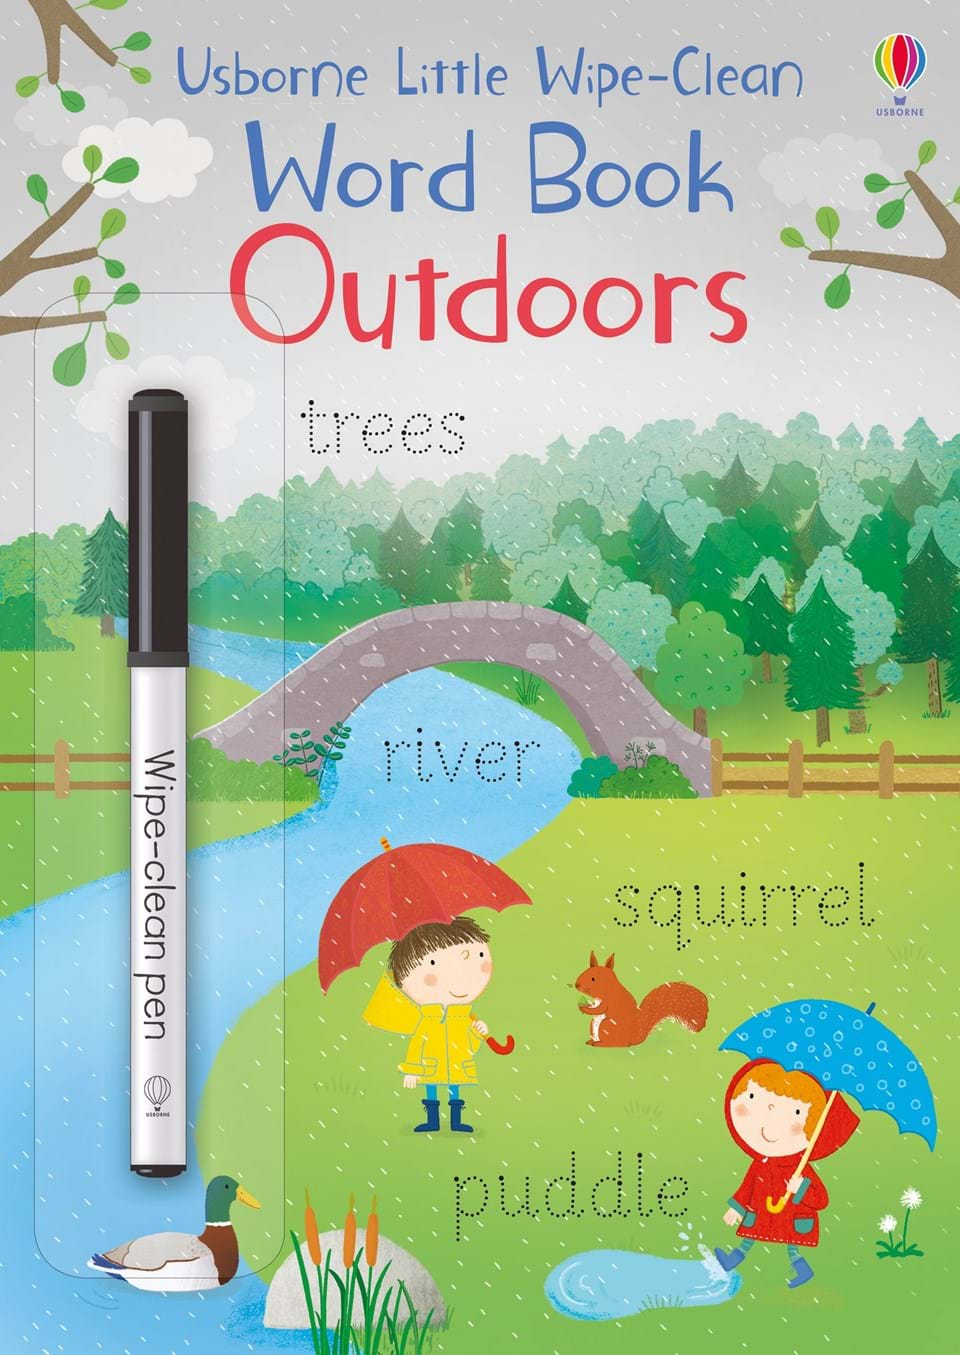 Little Wipe-Clean: Word Book Outdoors